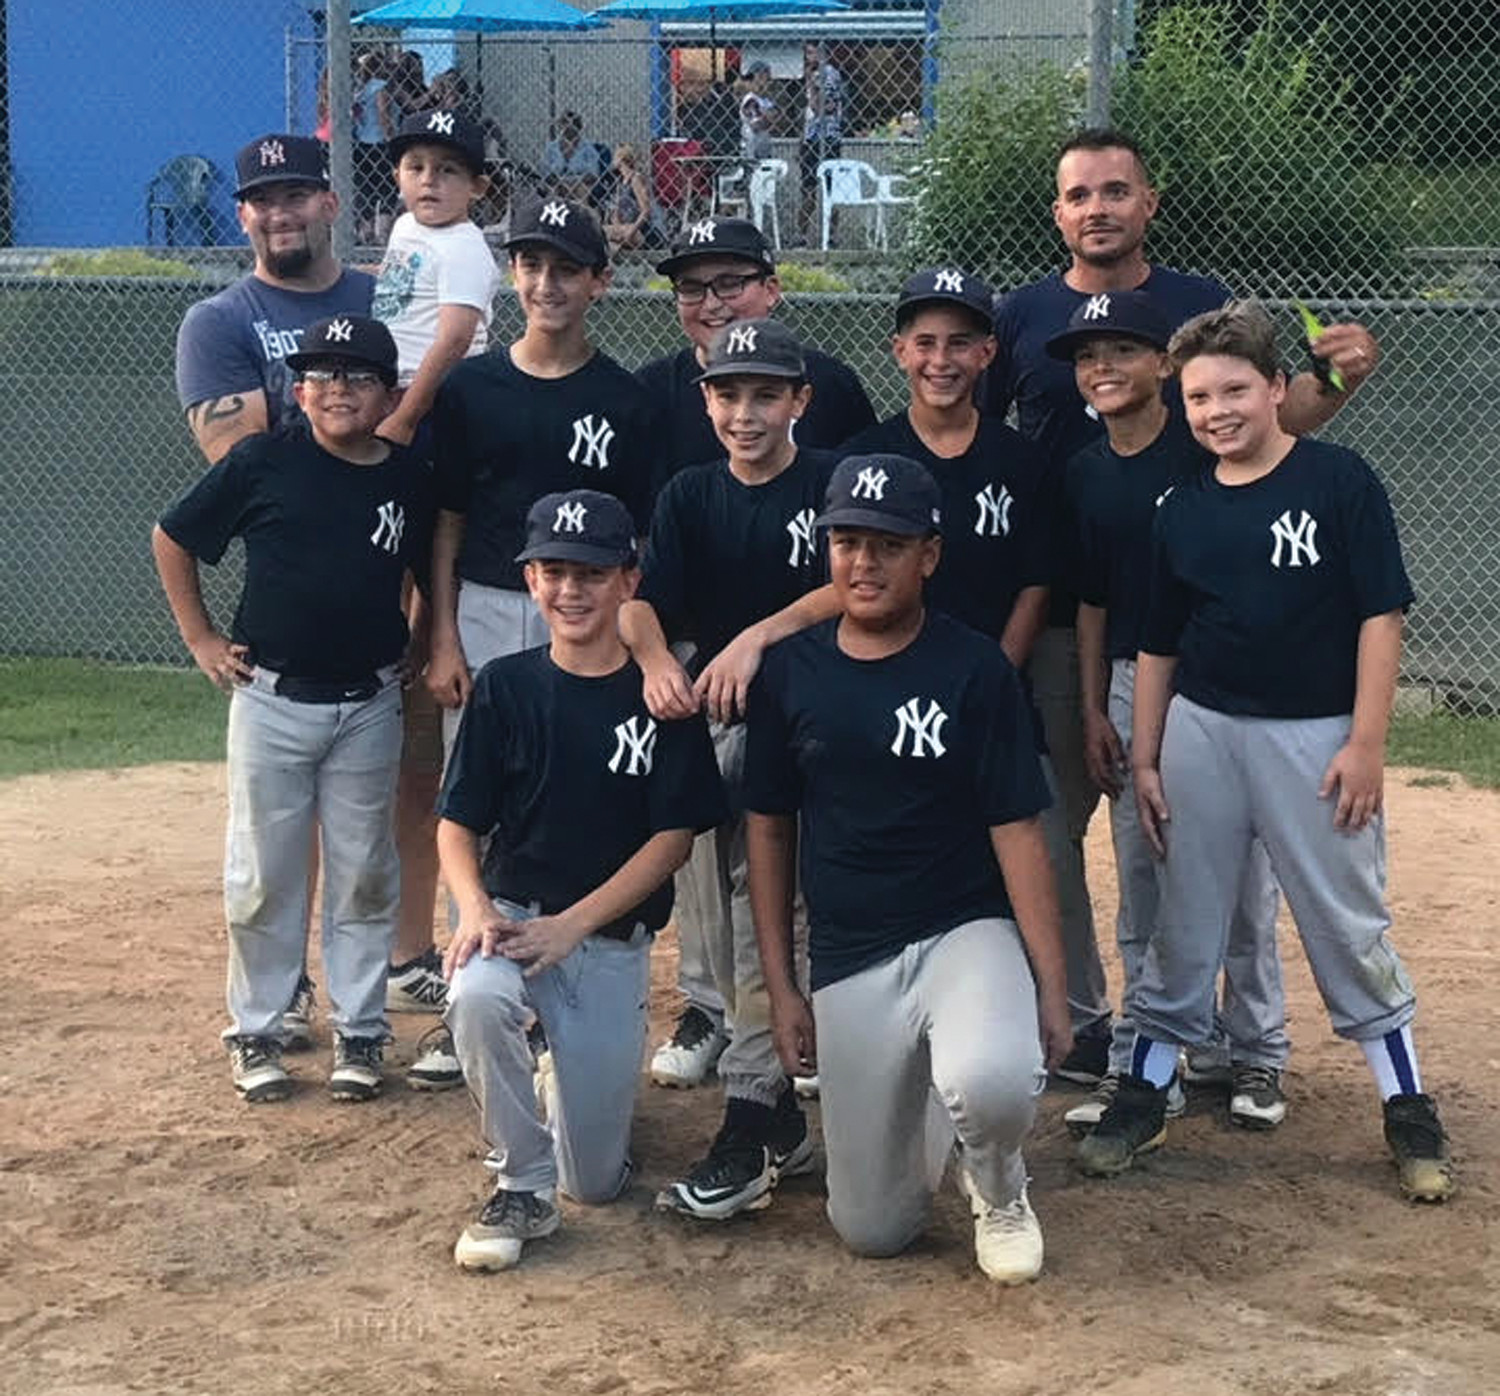 TOP TEAM: Members of the Northeast Auto Body-sponsored Yankees display their Johnston Little League finish after staking claim to the Town Championship last Friday night.  (Submitted photo)